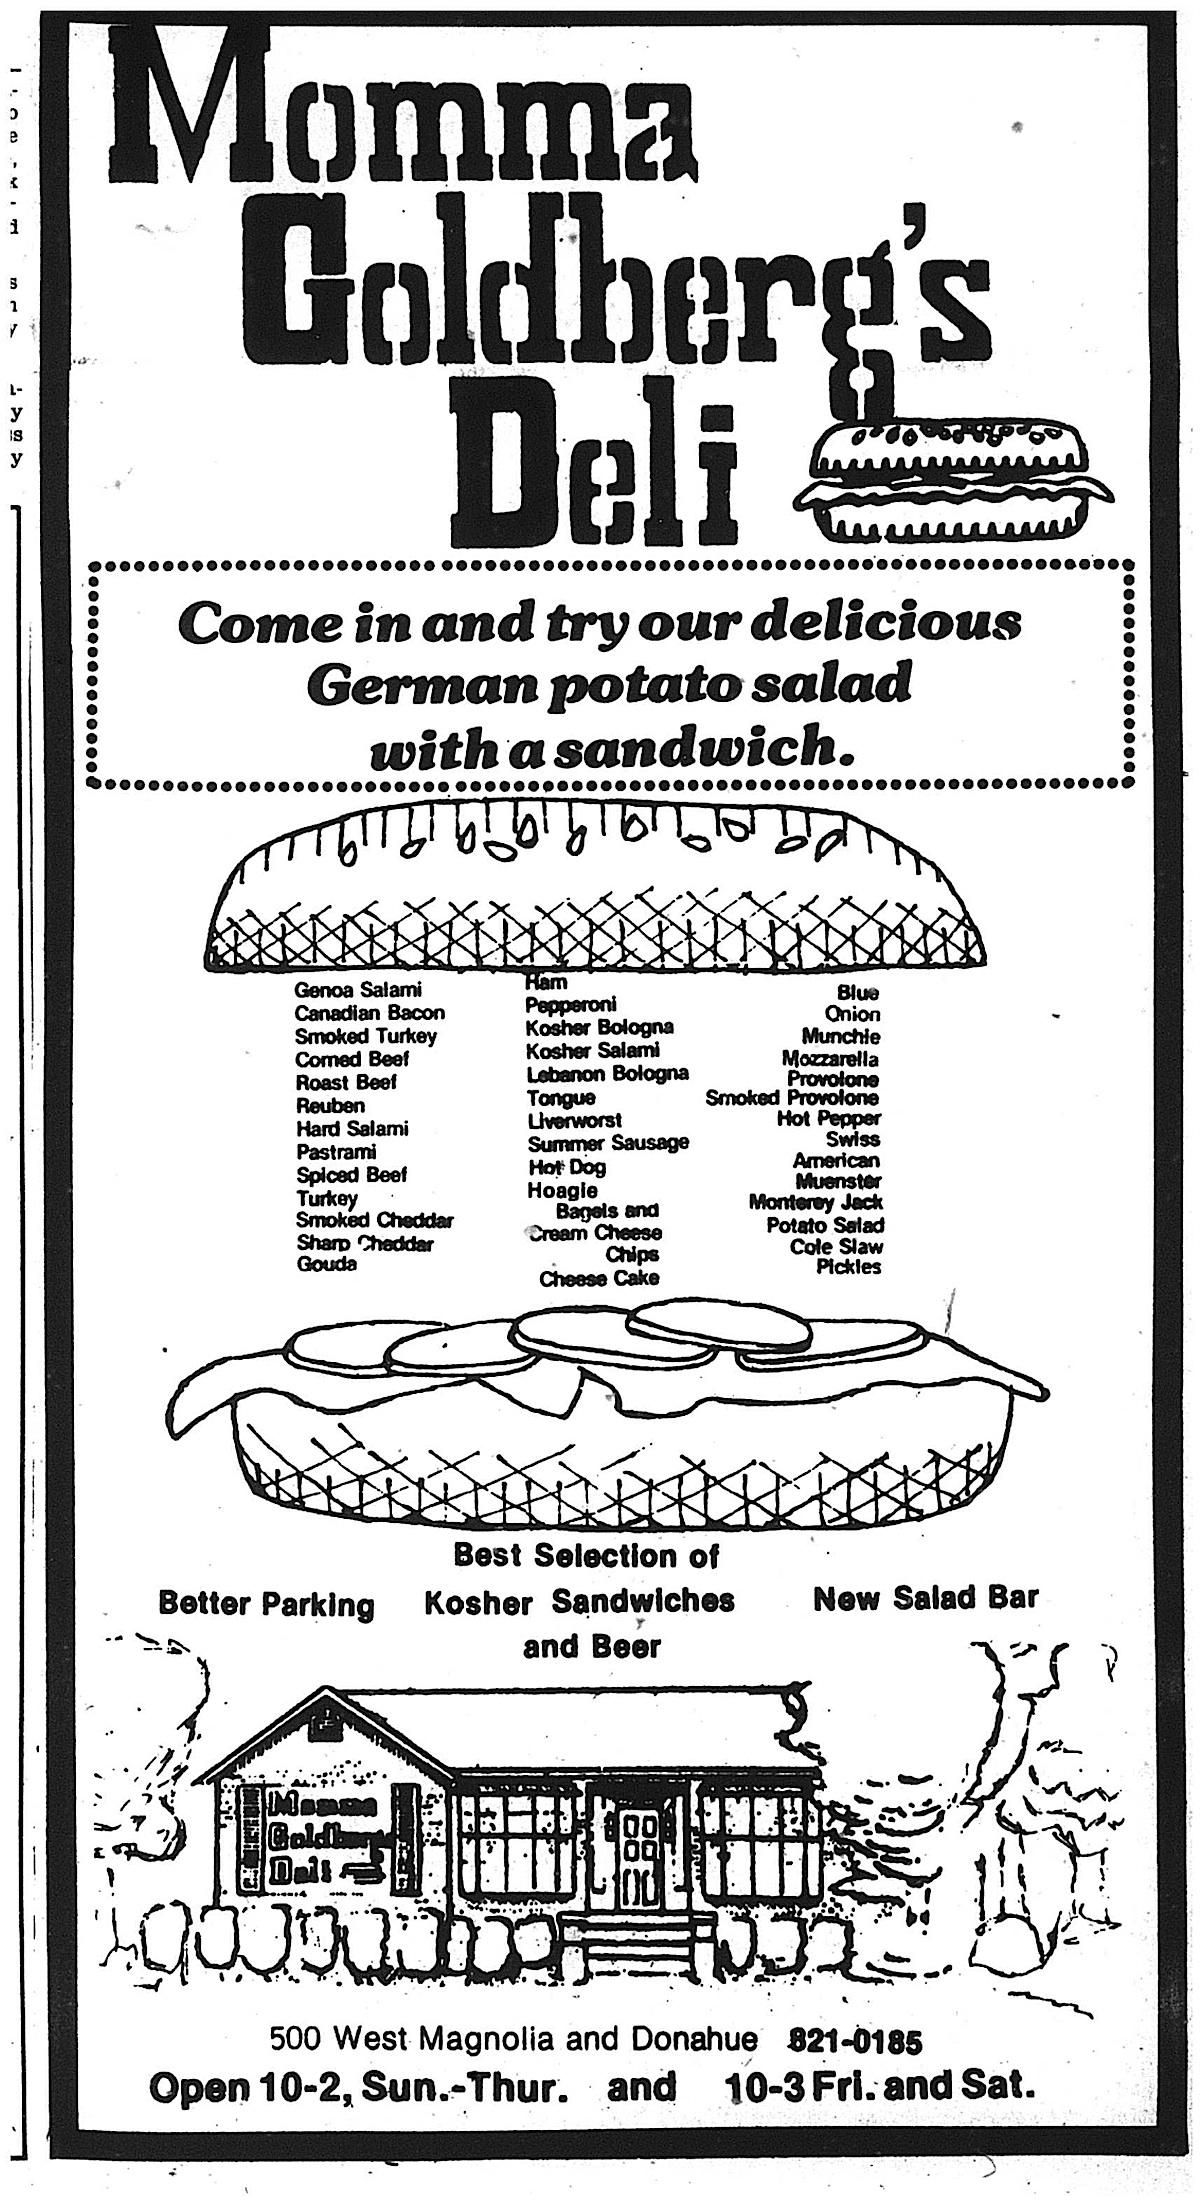 momma goldberg's 1979 menu crop